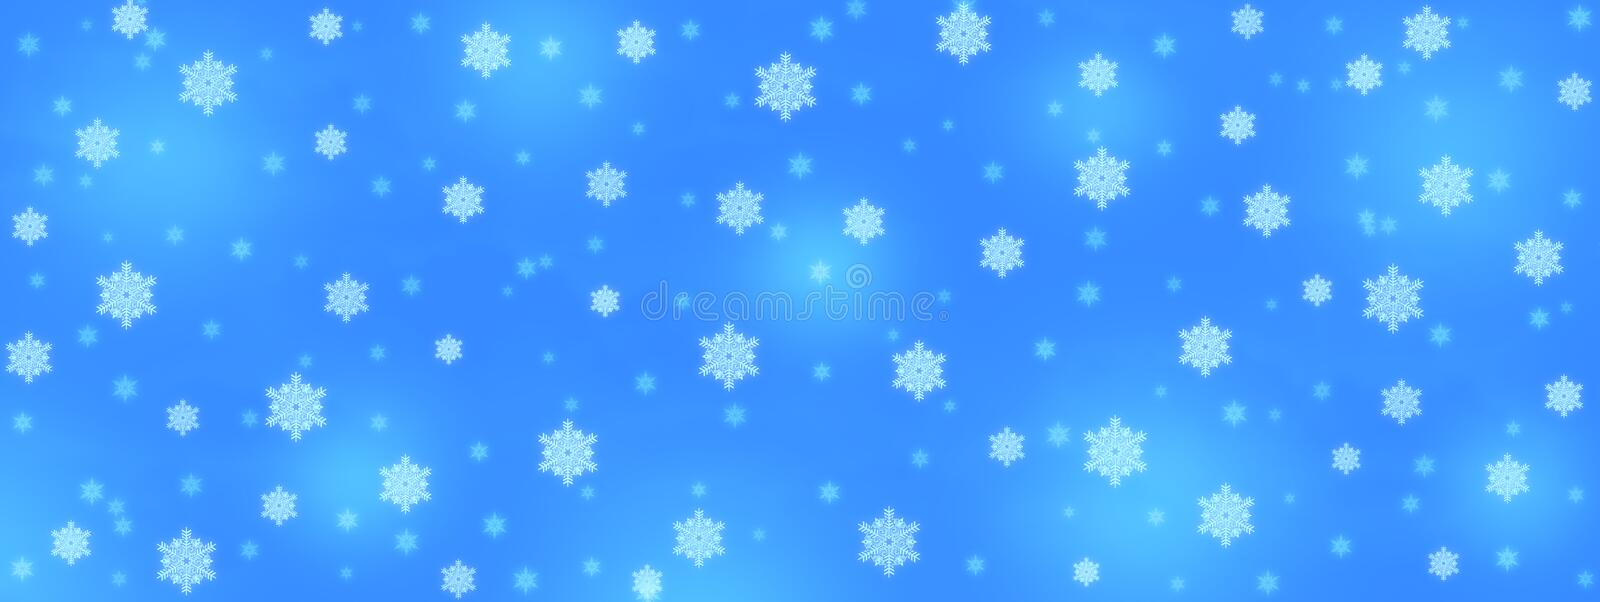 Abstract Falling Snowflakes in Blue Banner Background stock photography